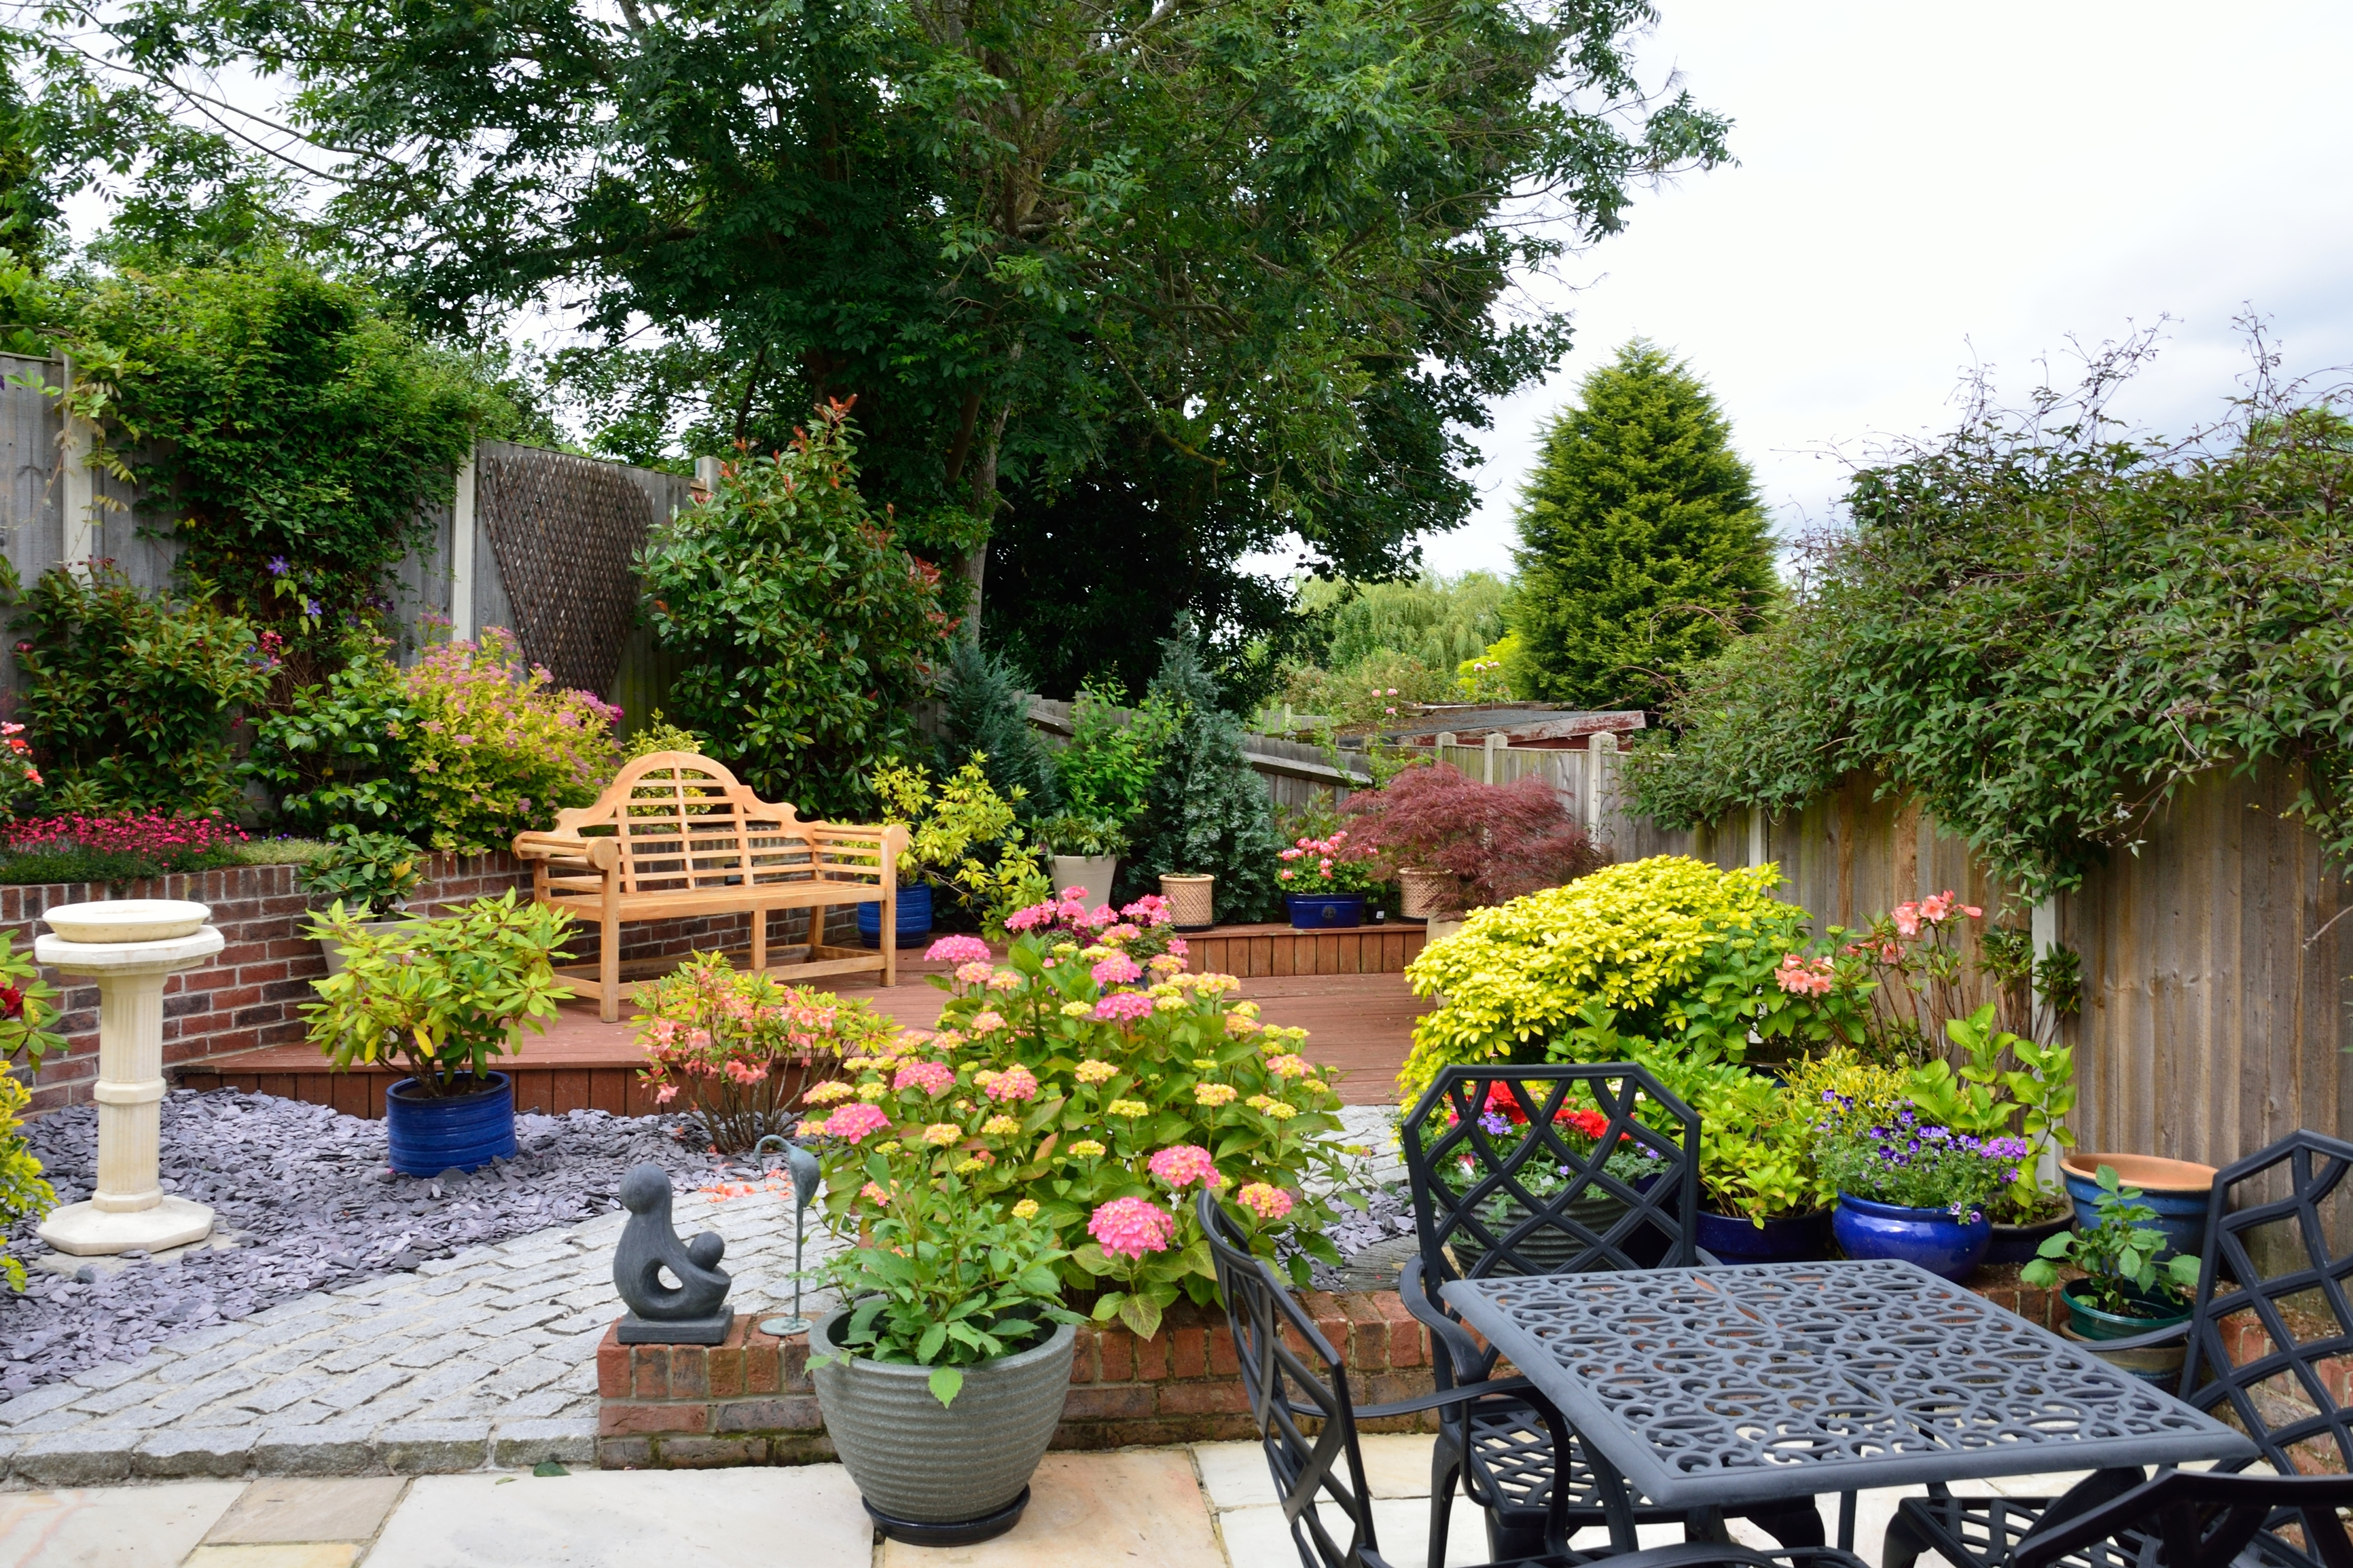 How To Create A Low Maintenance Garden The View From The